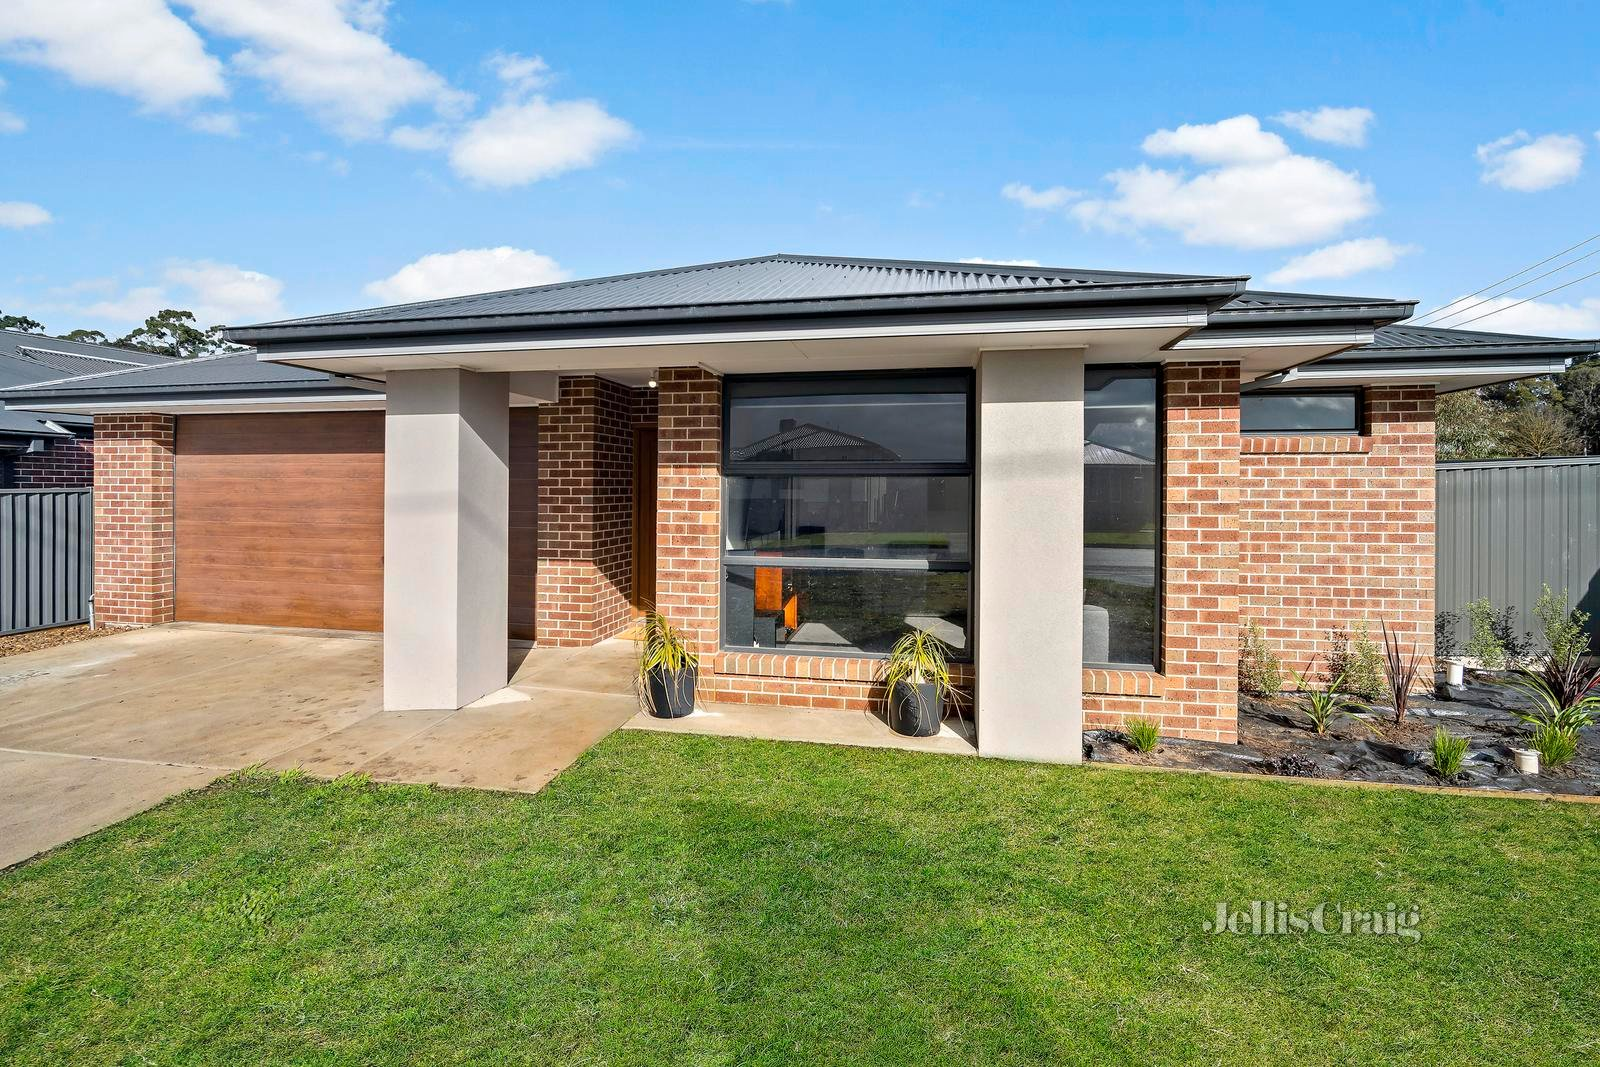 112 Gracefield Road, Brown Hill - Image 1